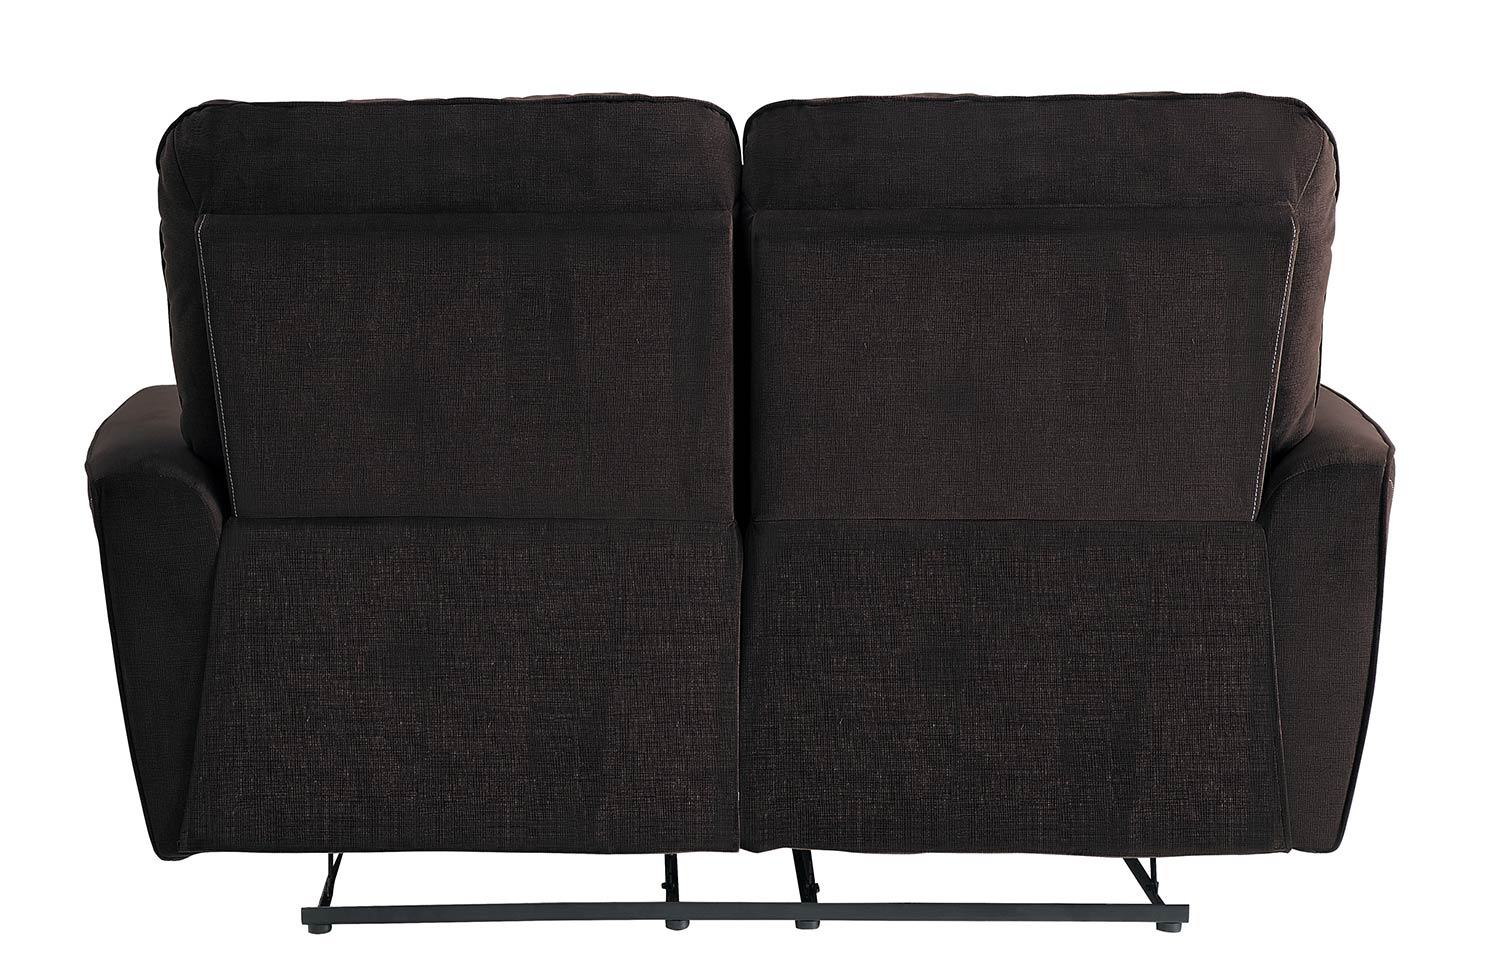 Homelegance Dowling Double Reclining Love Seat - Chocolate